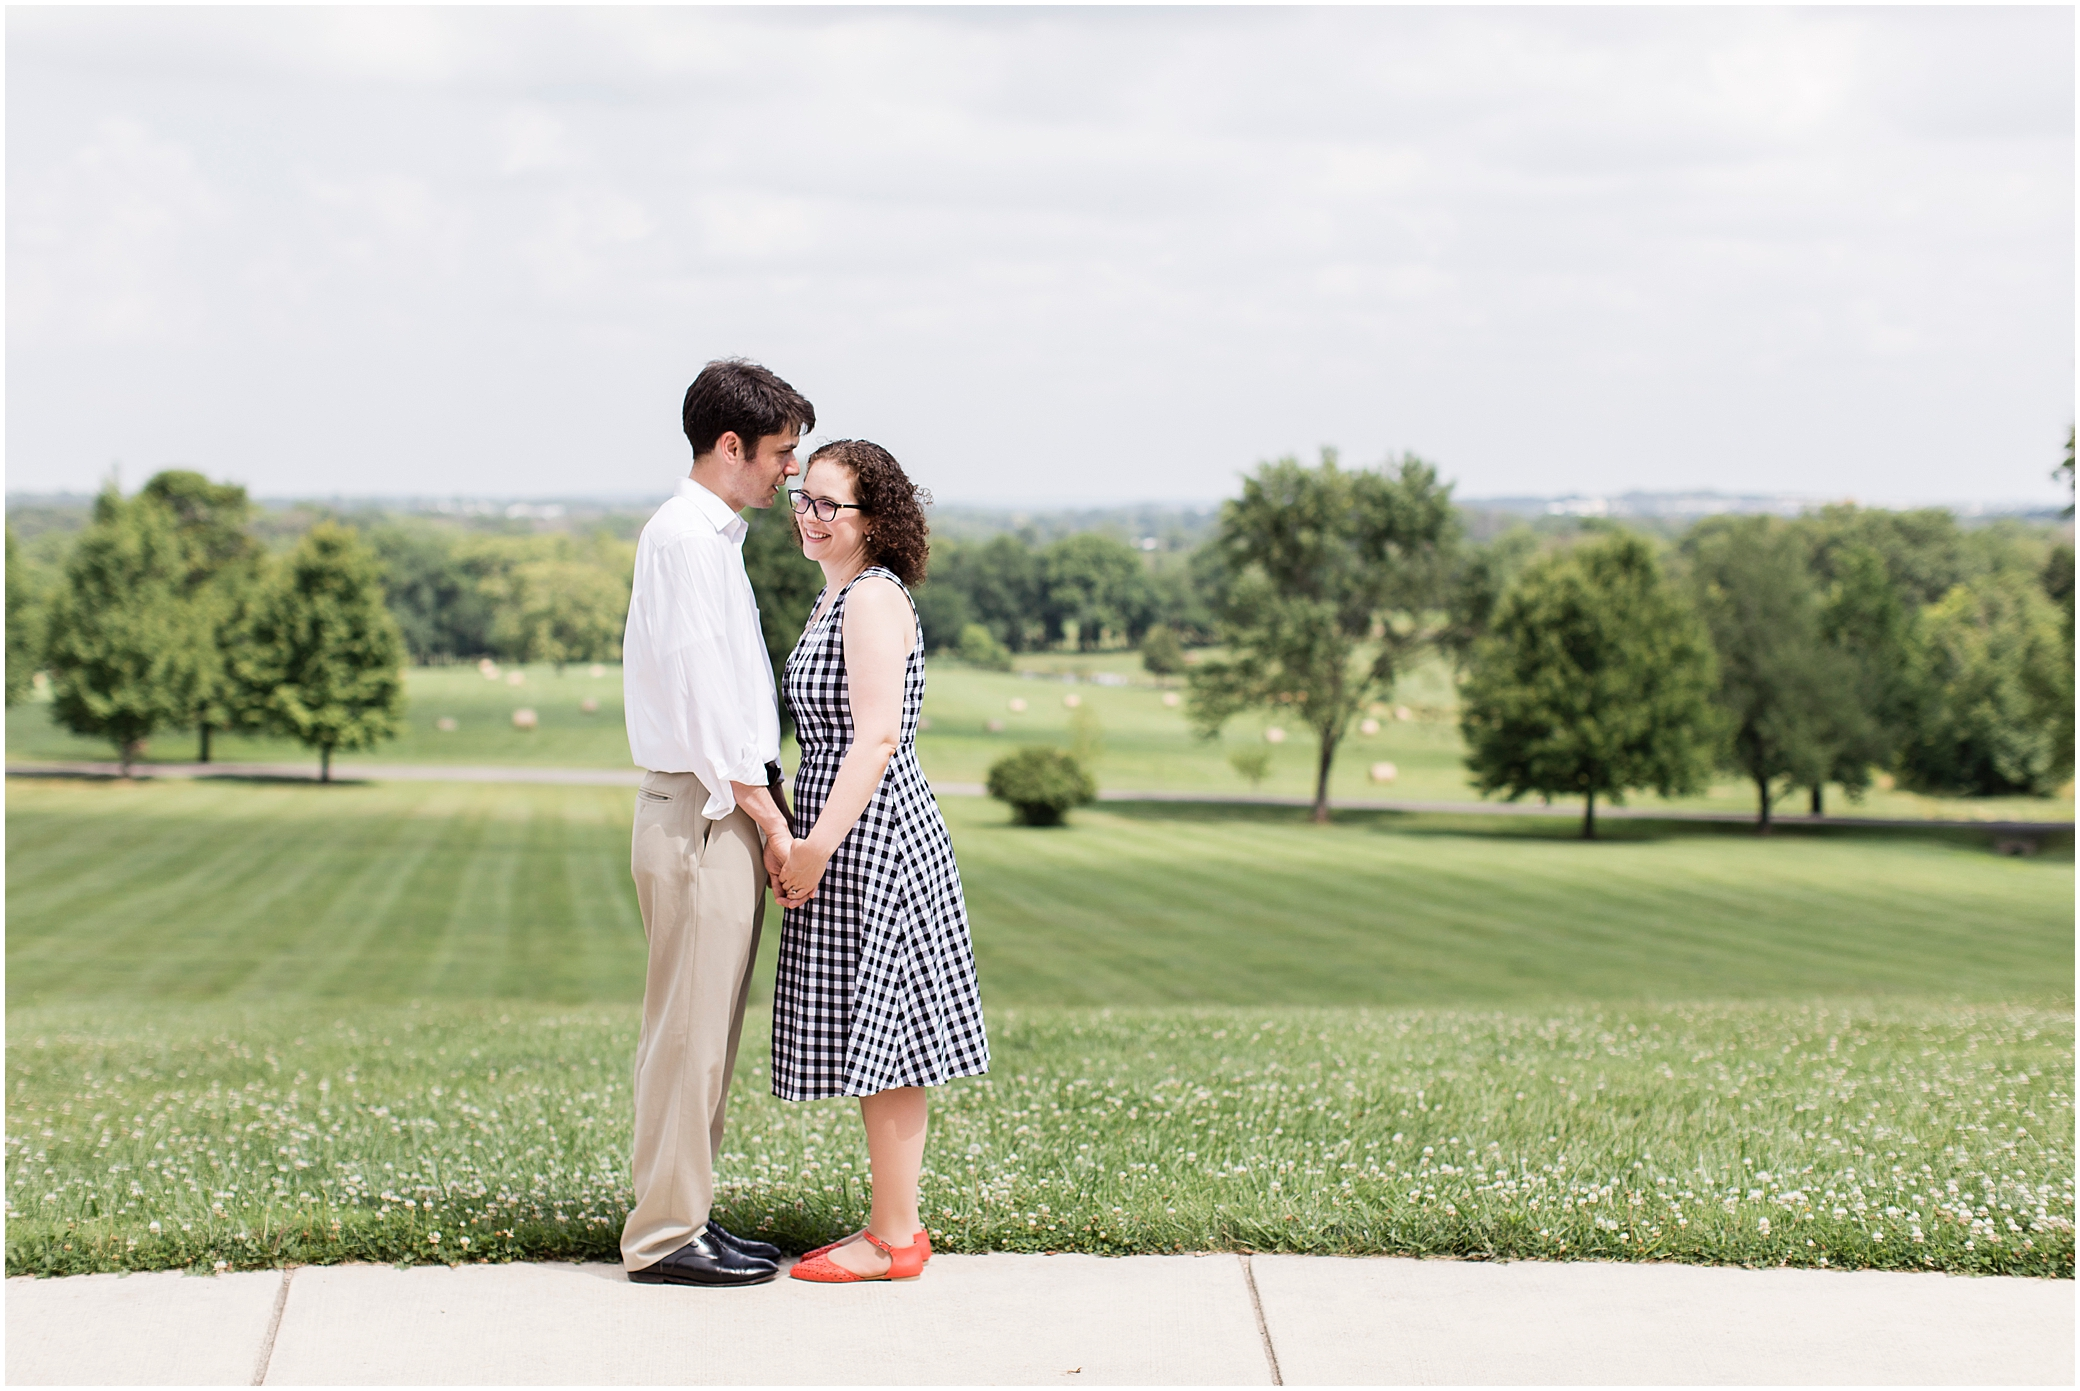 morven park engagement photography, leesburg, virginia